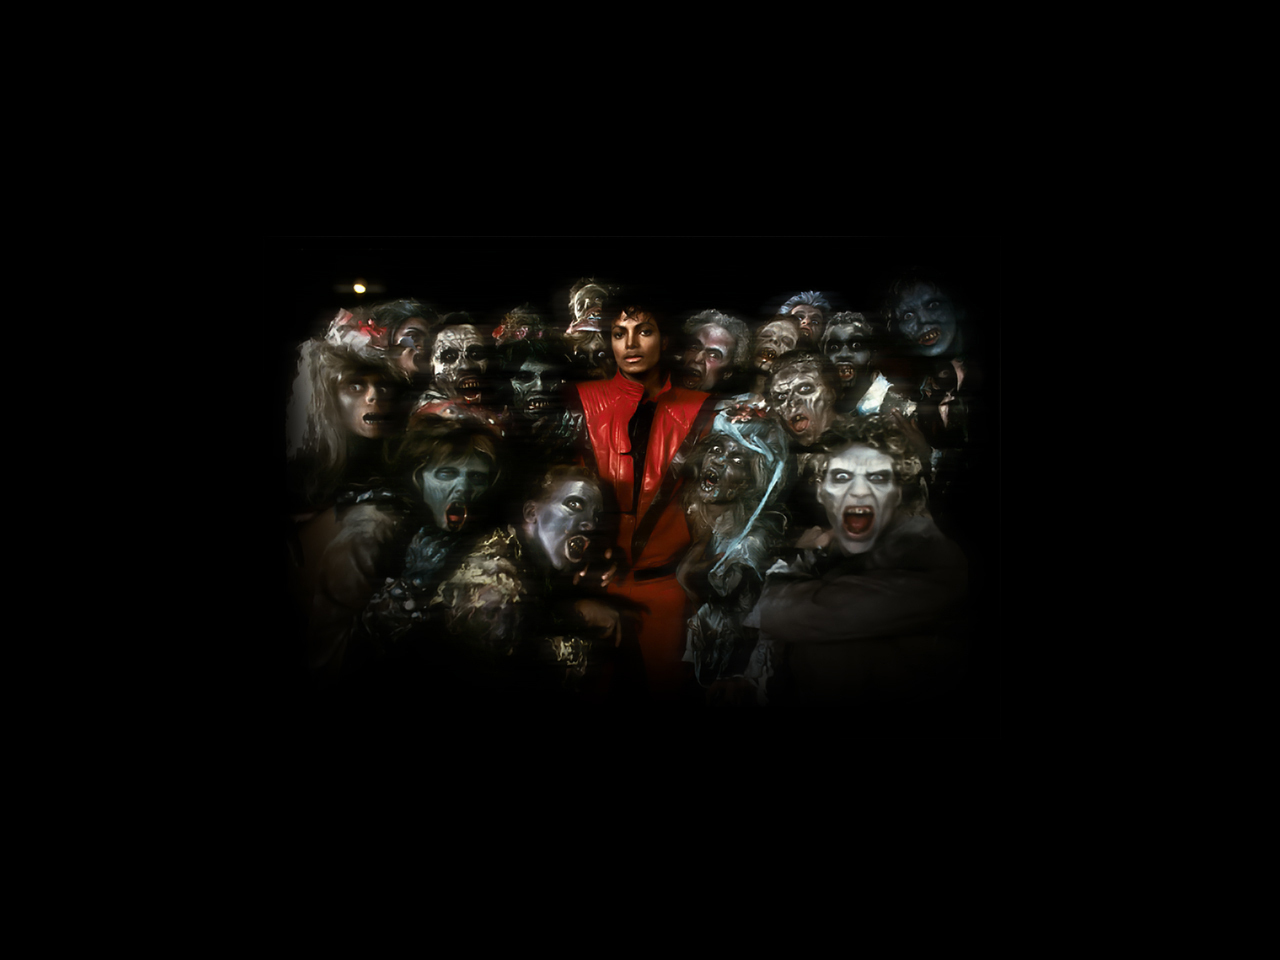 MJ - michael-jackson wallpaper